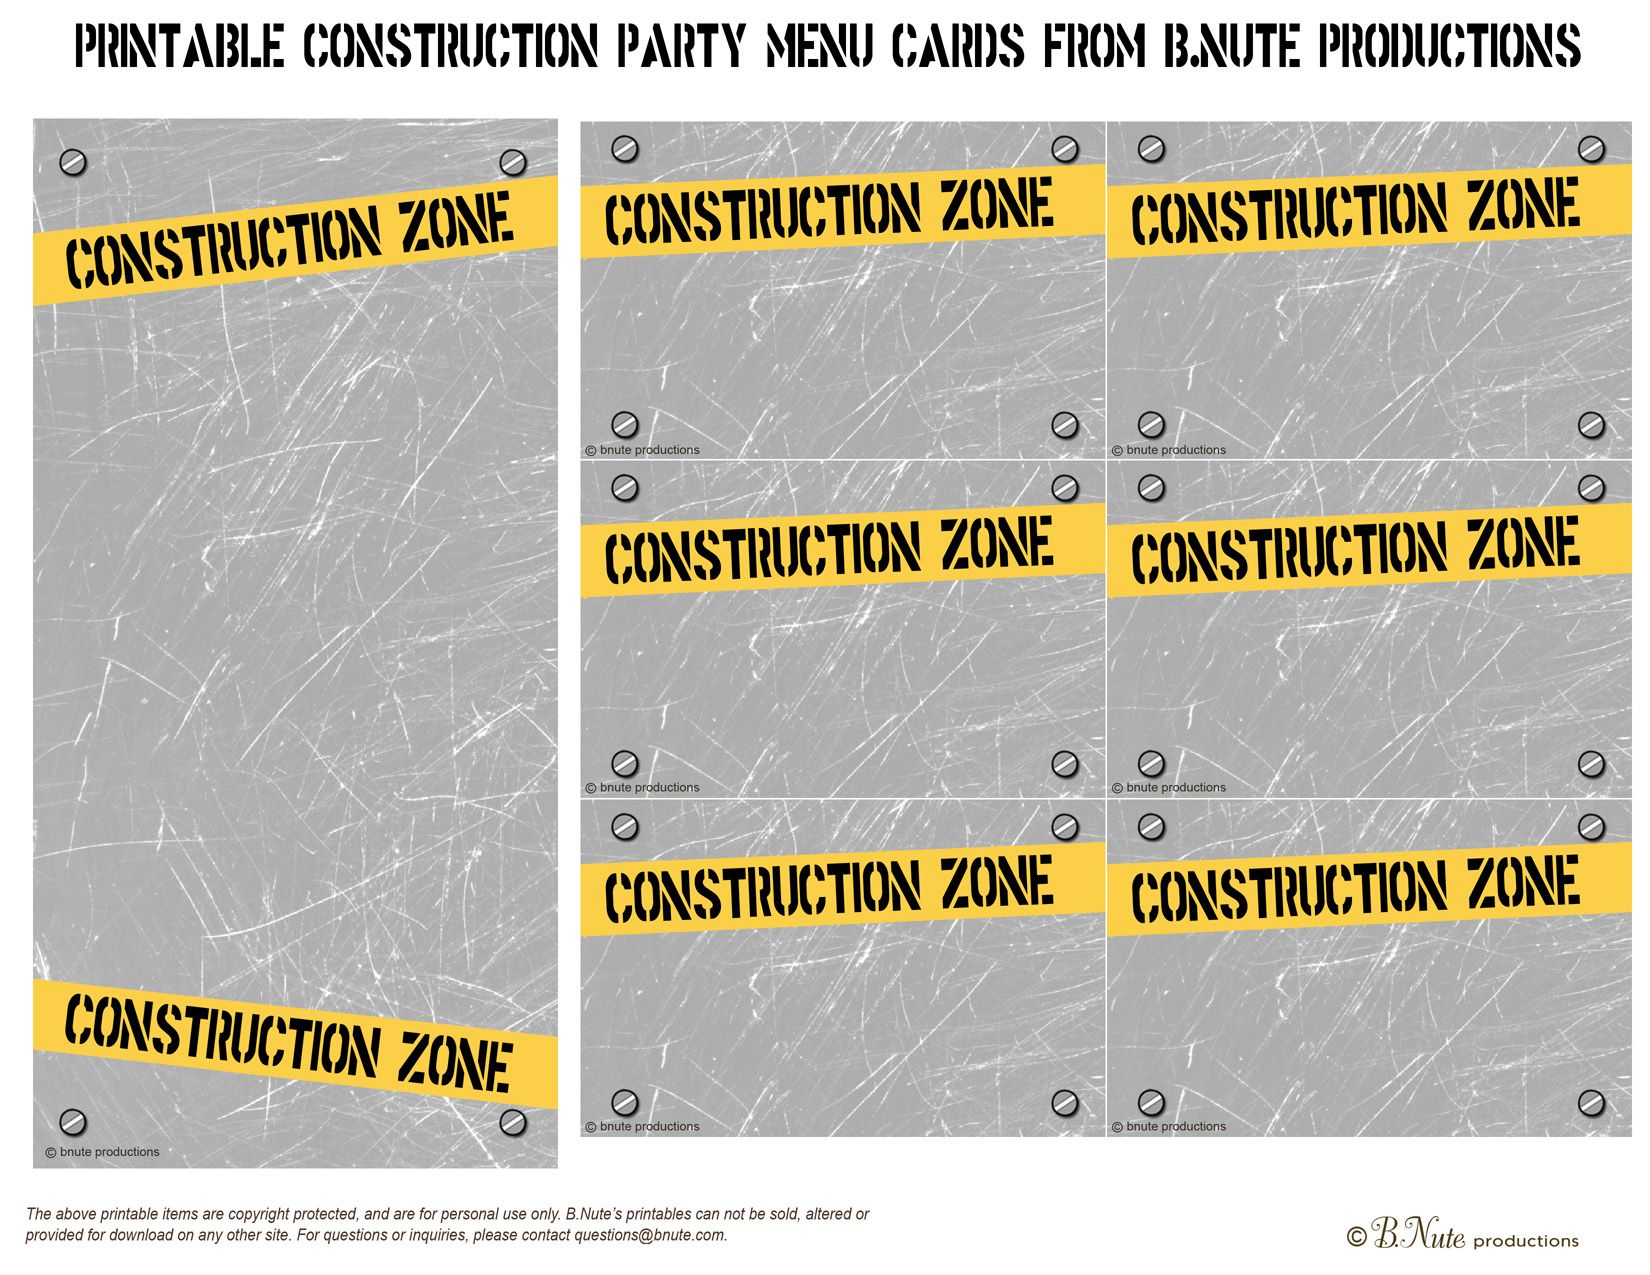 bnute productions free printable construction party menu cards